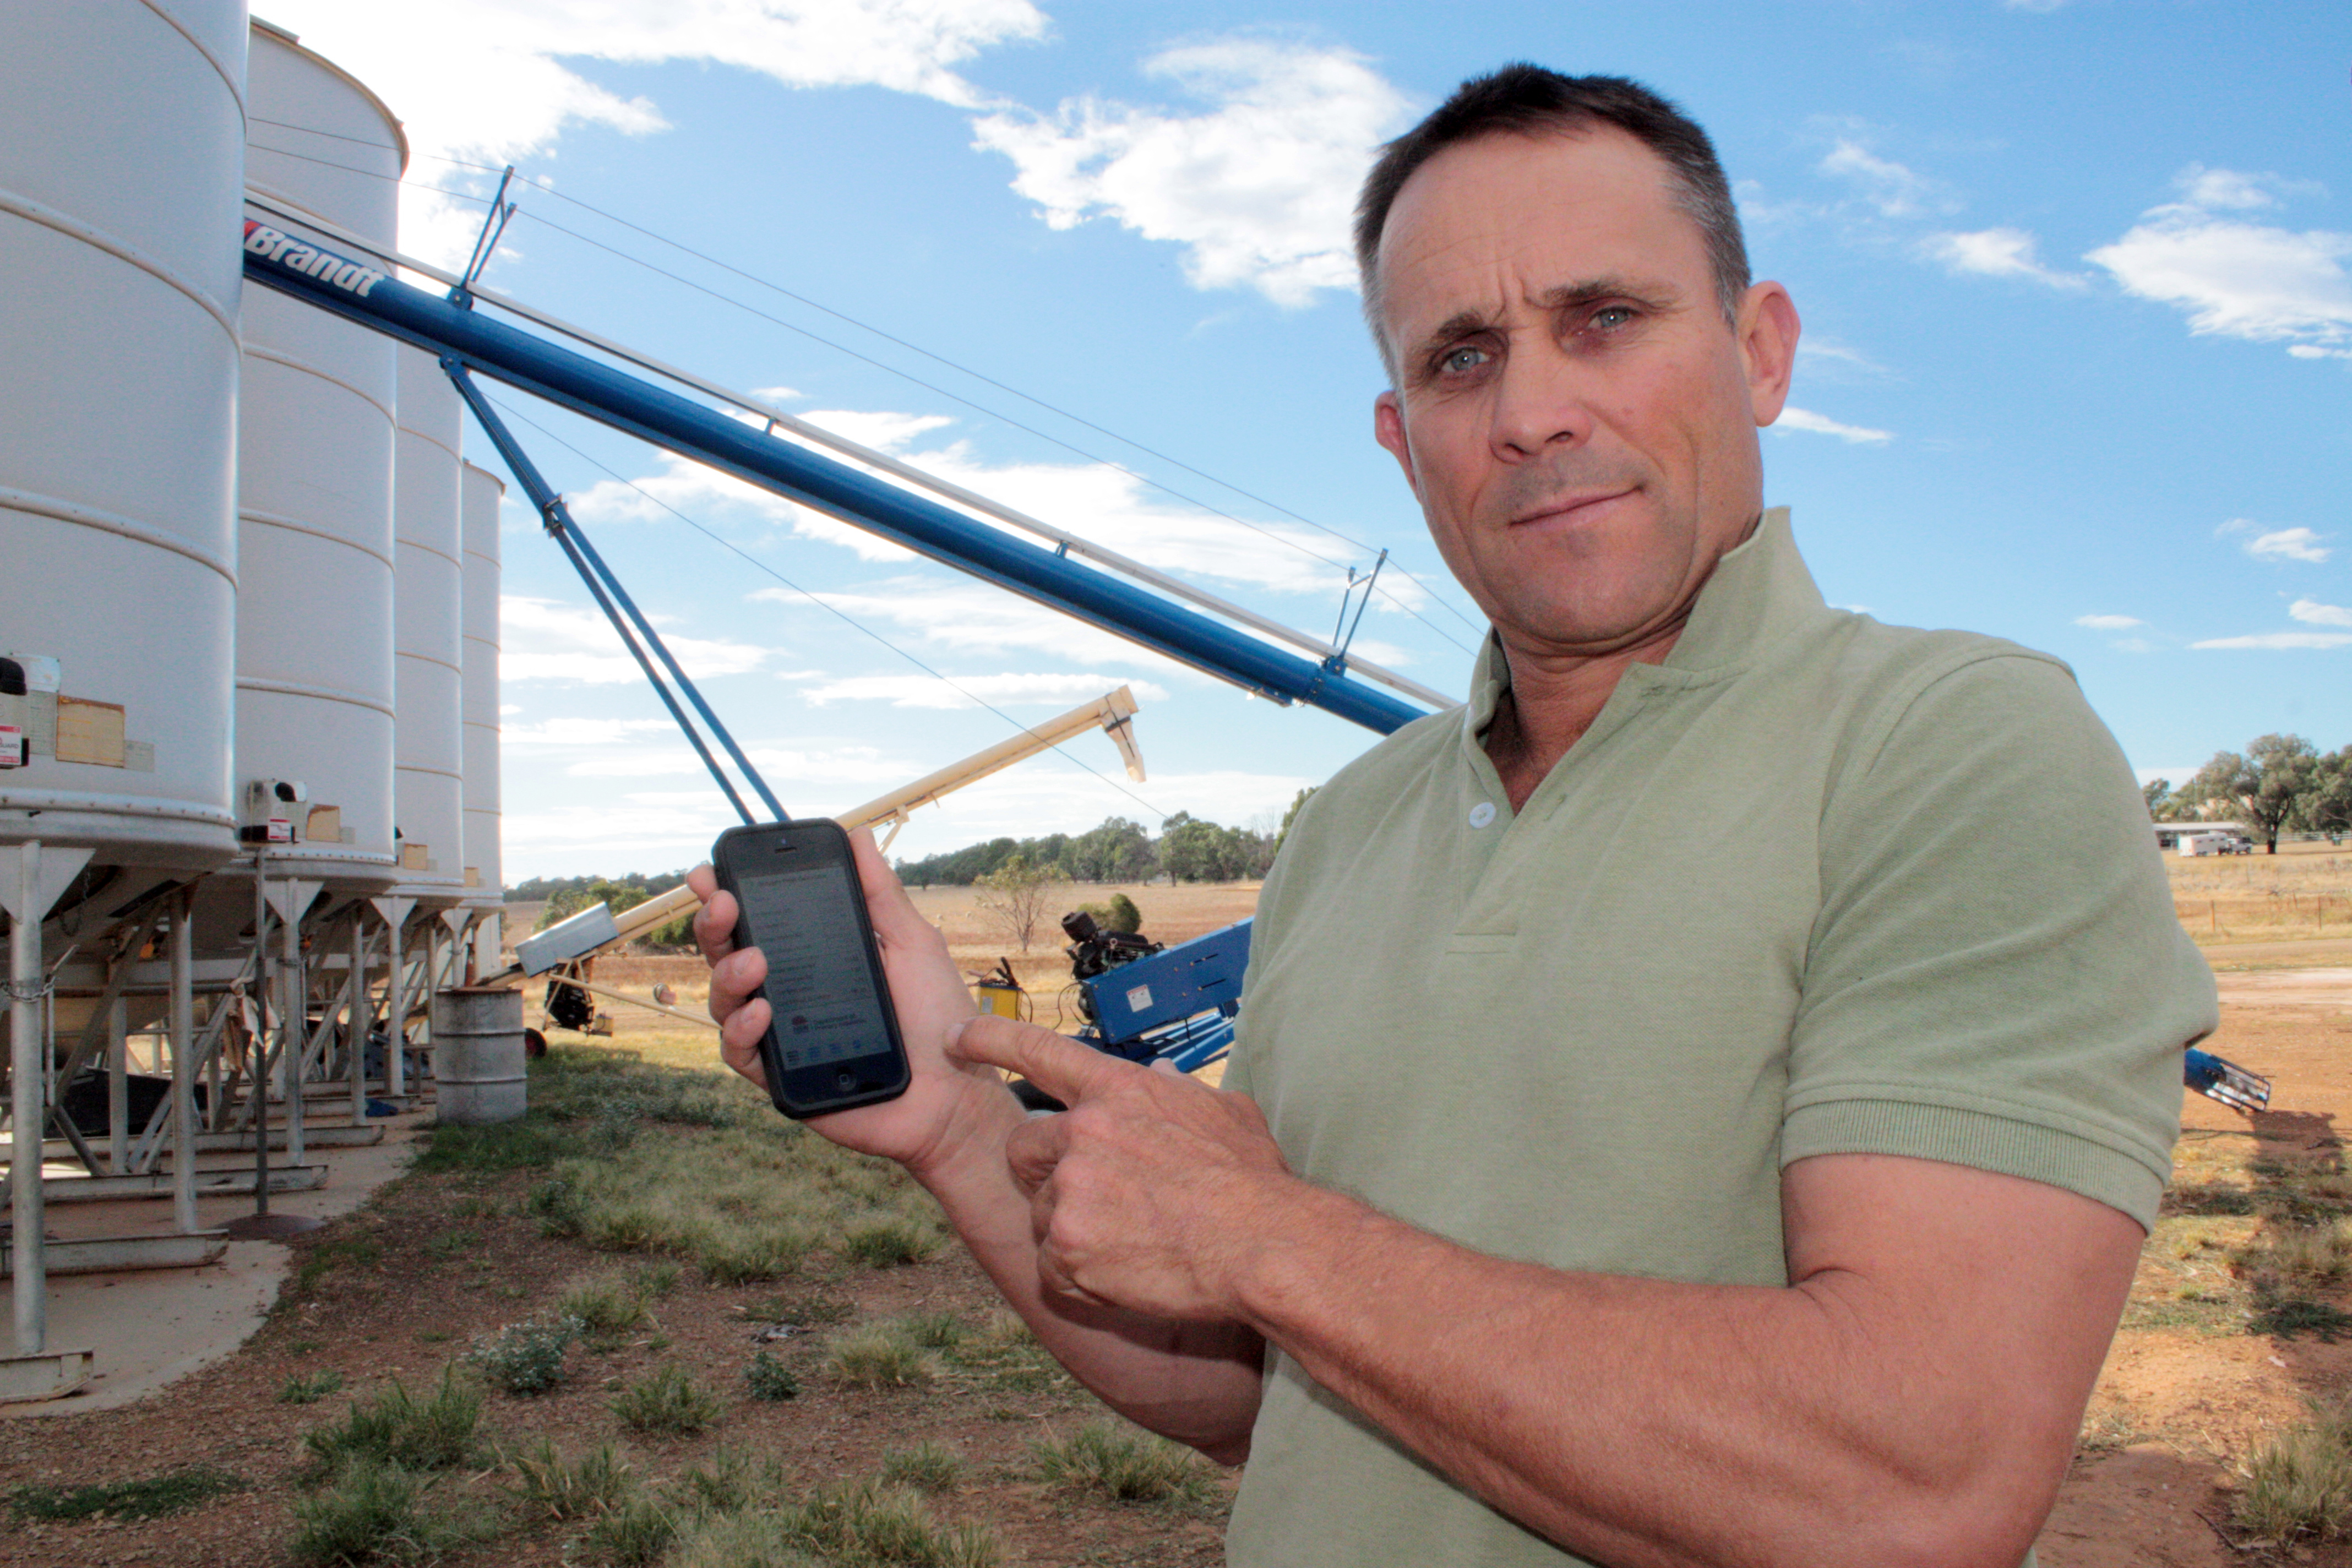 Geoff  Casburn with mobile phone showing the Drought Feed Calculator app